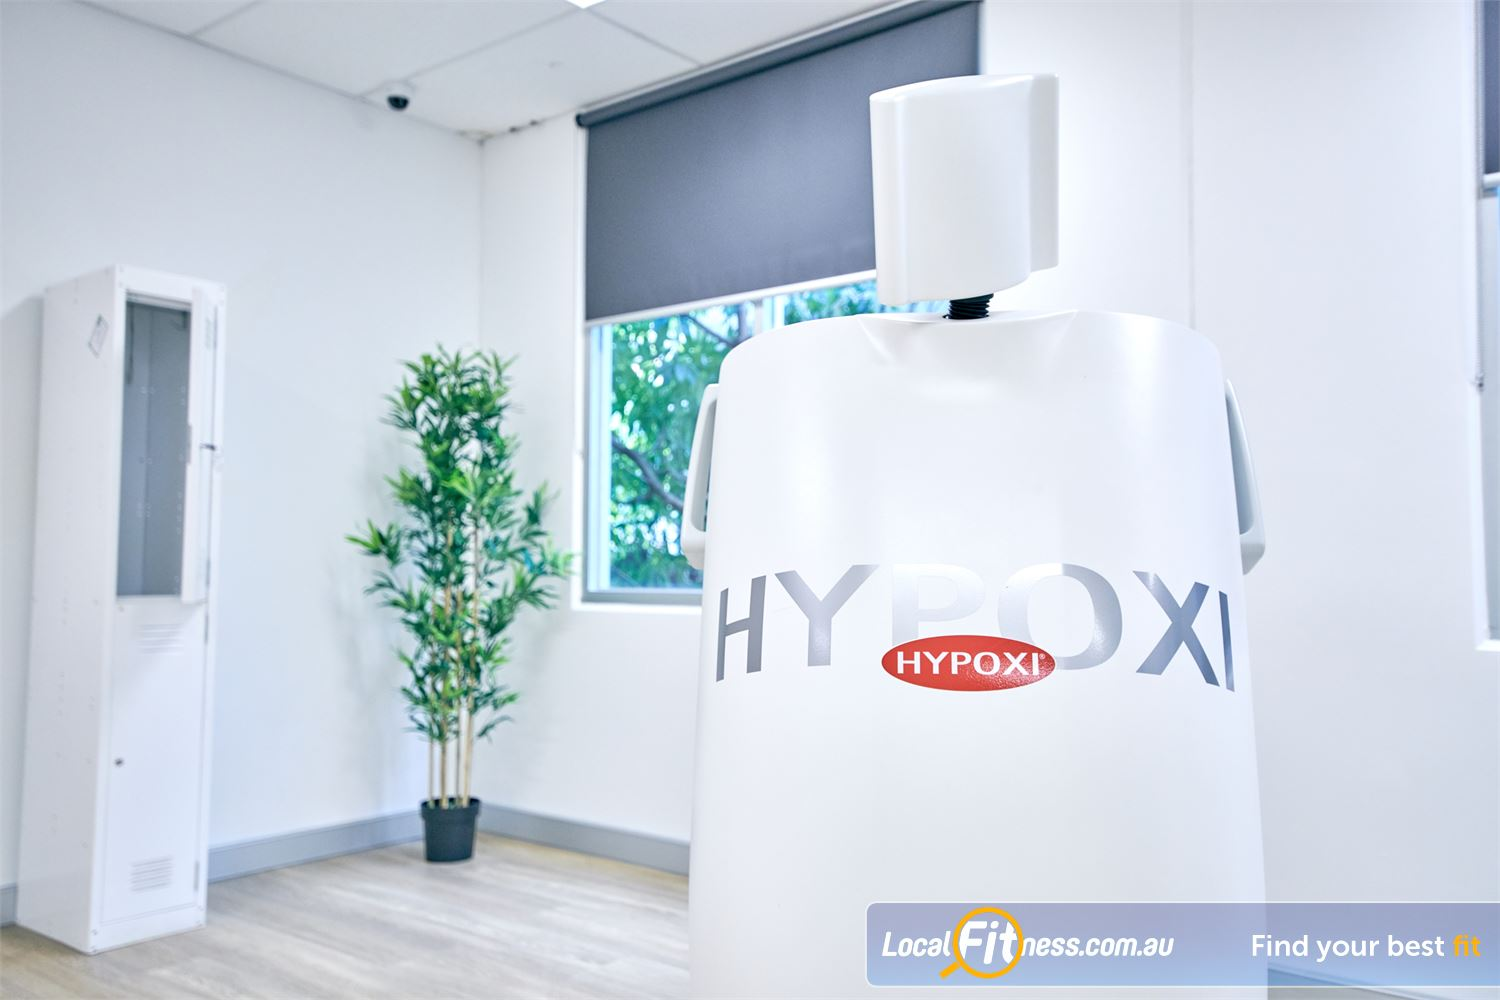 HYPOXI Weight Loss Near Stanmore Our advanced HYPOXI machines will monitor your heart rate, skin temperature during treatment.